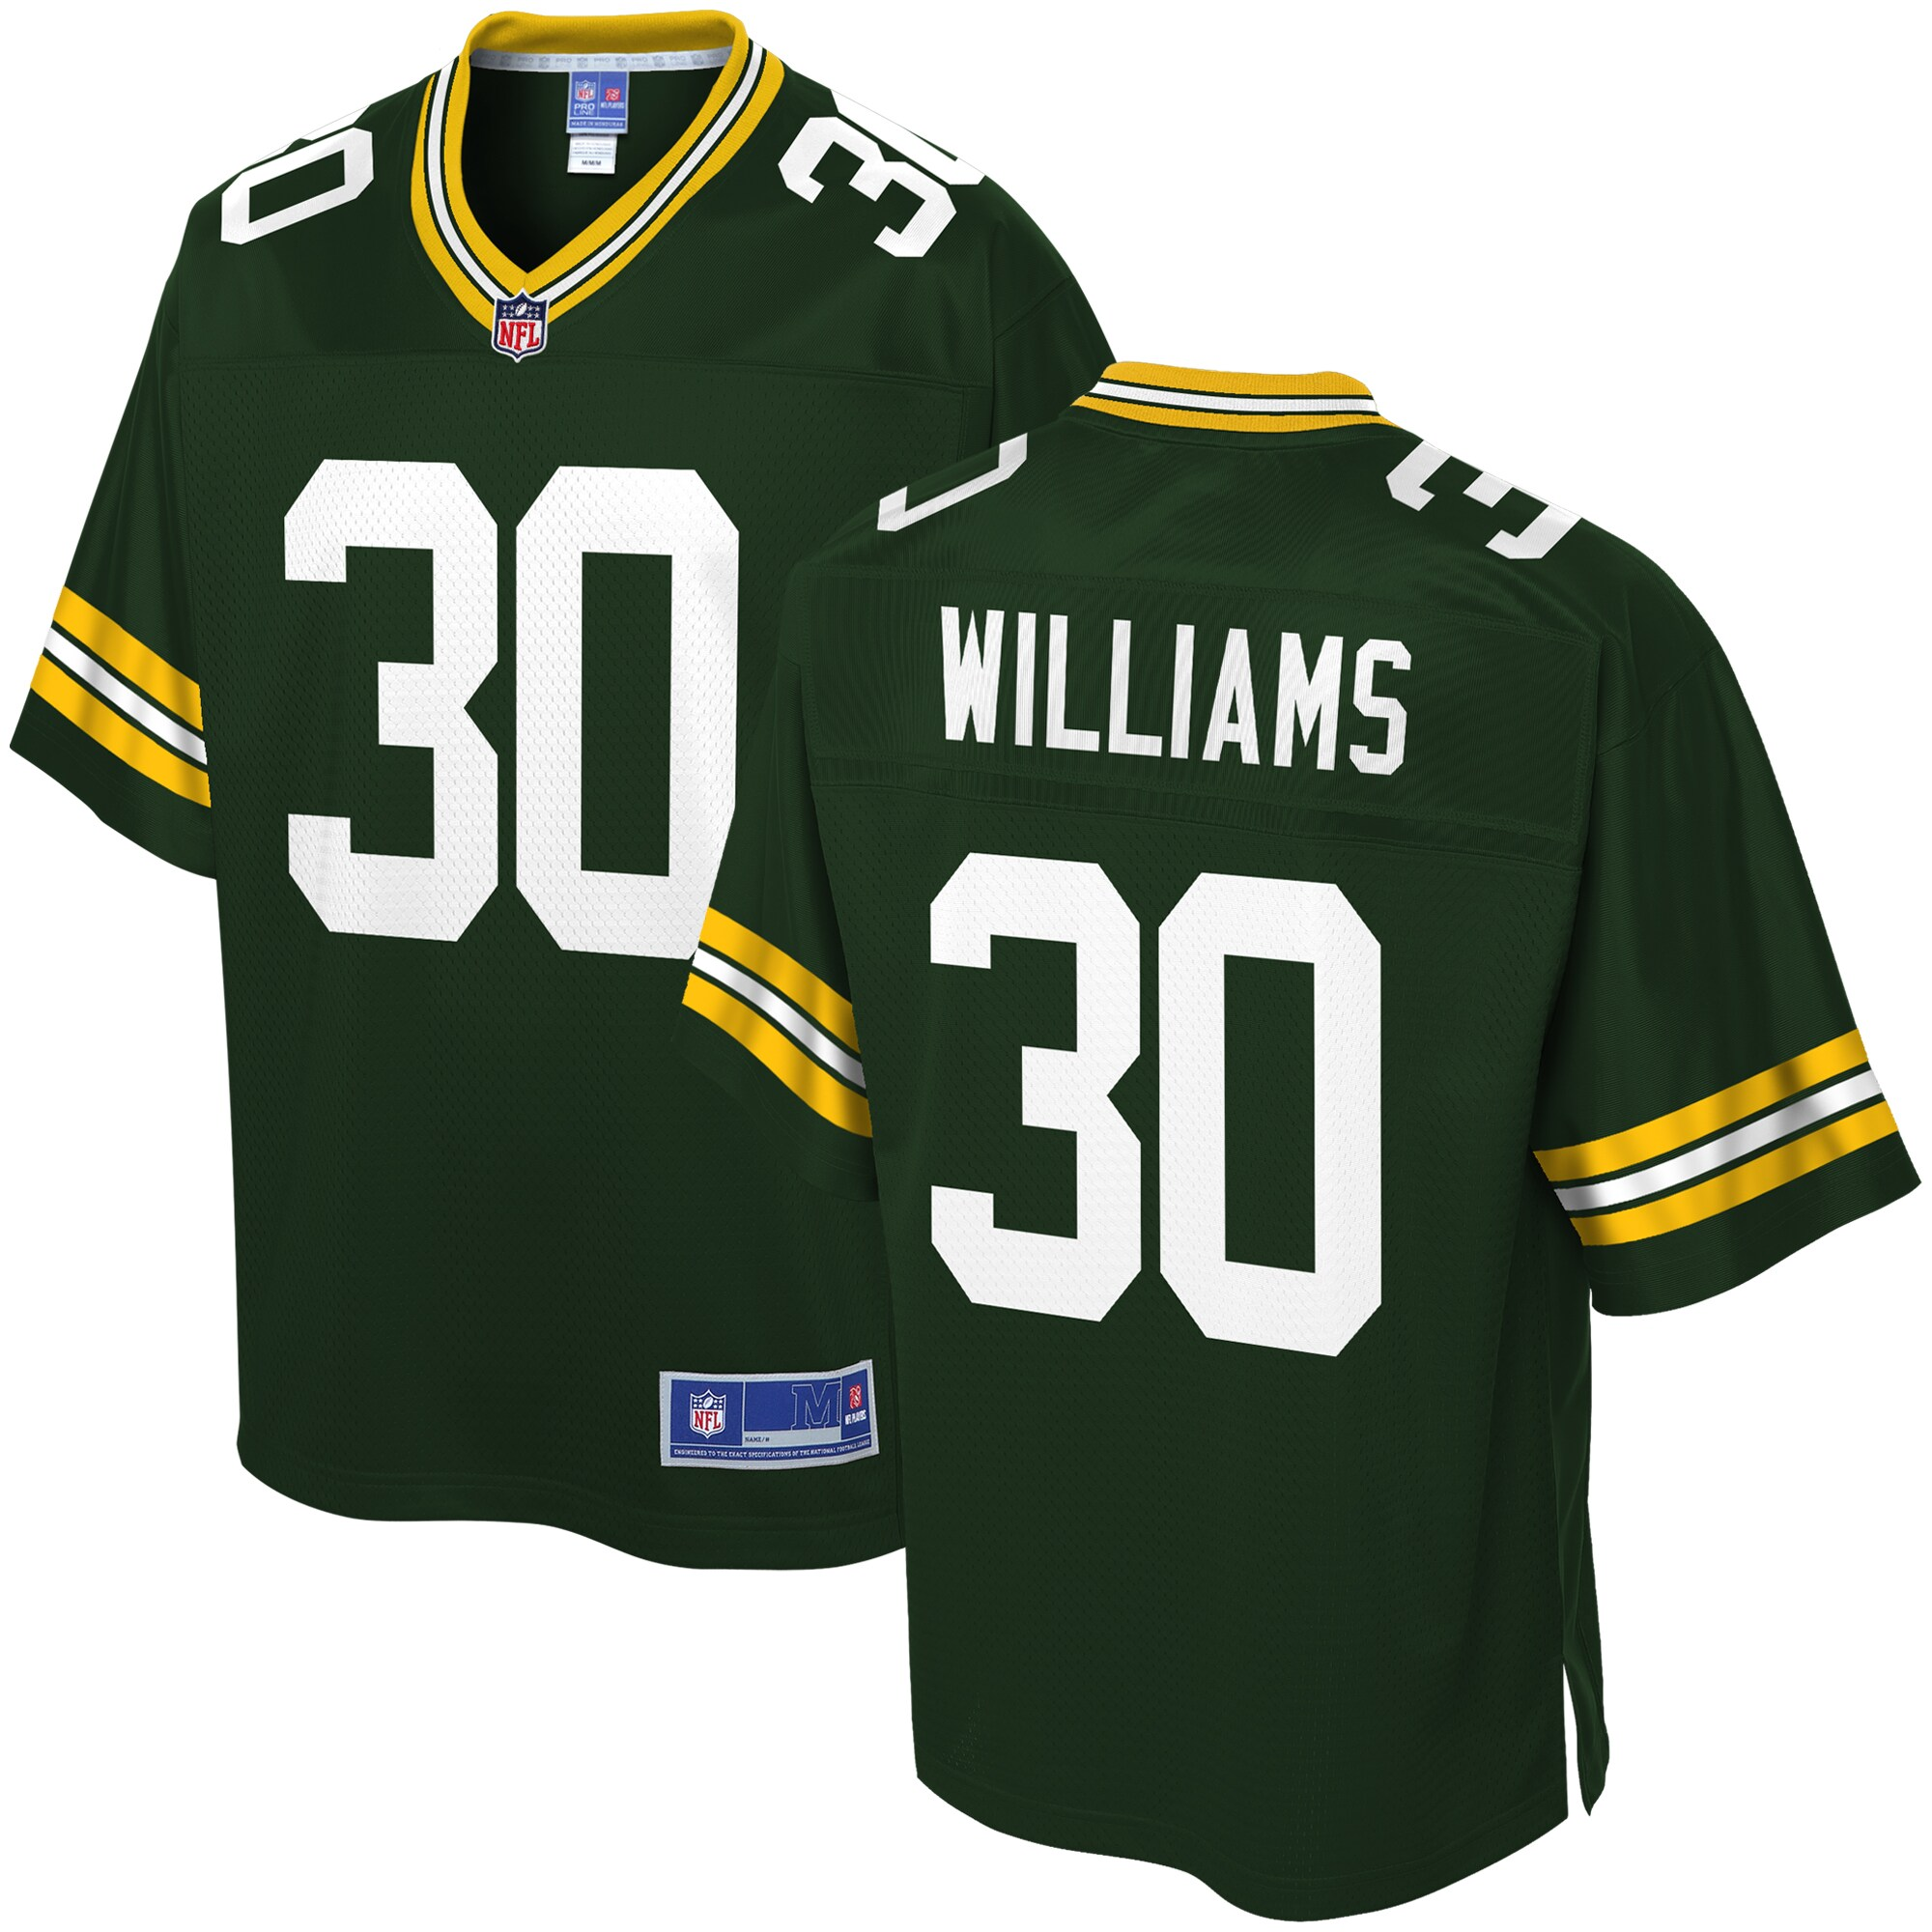 Jamaal Williams Green Bay Packers NFL Pro Line Player Jersey - Green